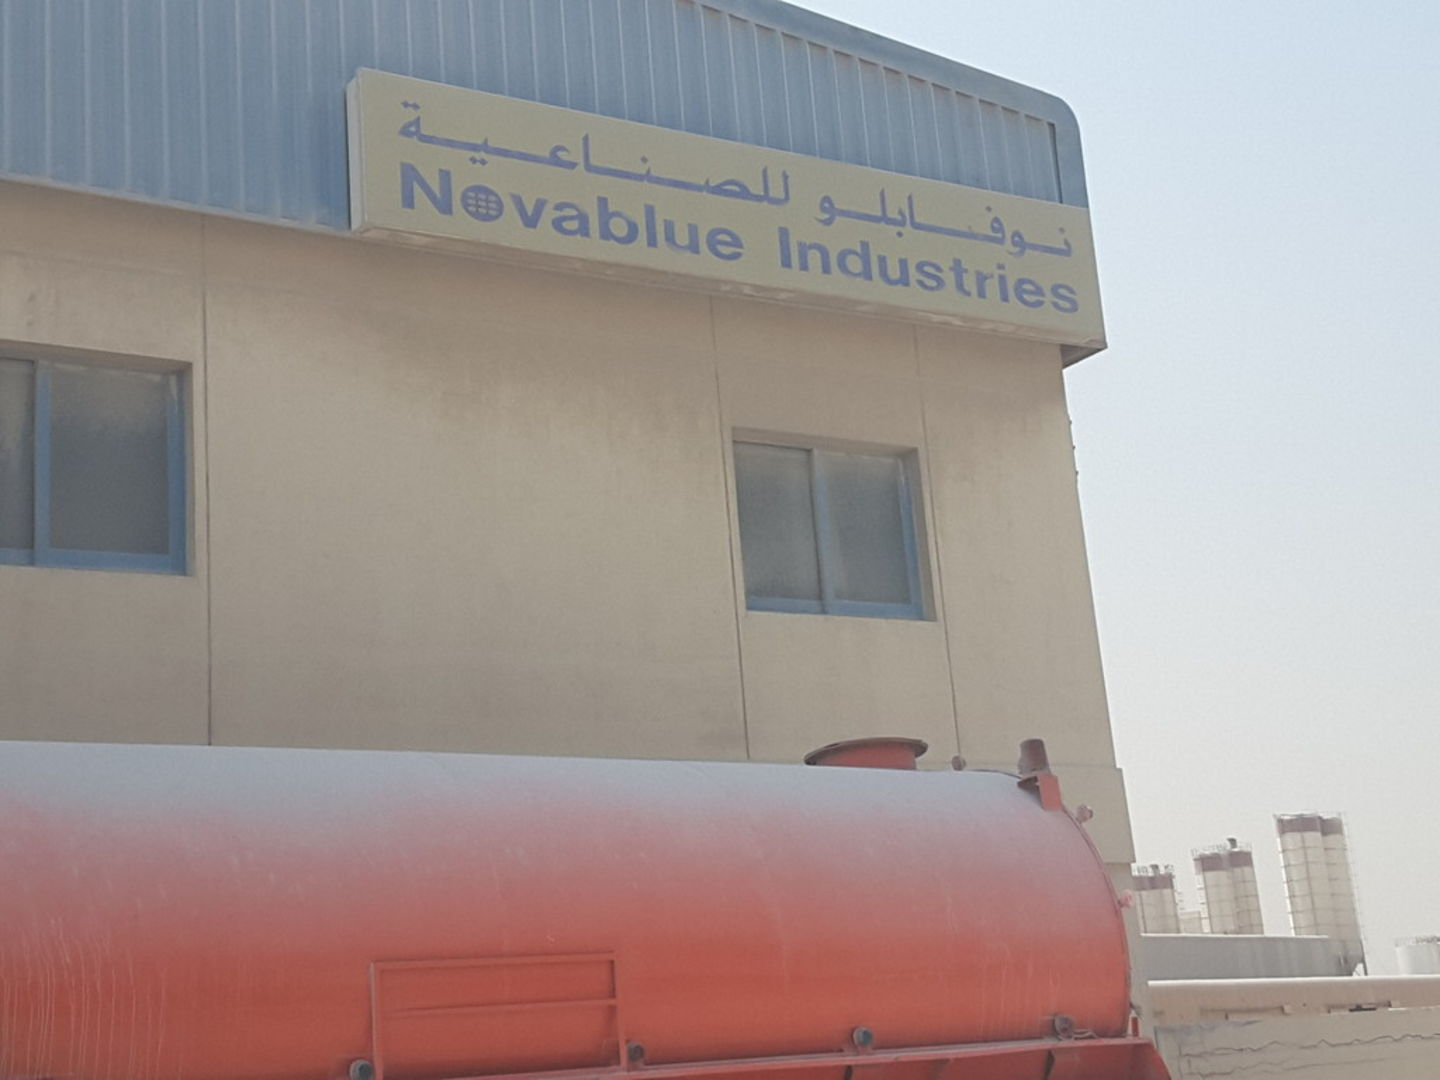 HiDubai-business-novablue-industries-b2b-services-distributors-wholesalers-jebel-ali-industrial-3-dubai-2